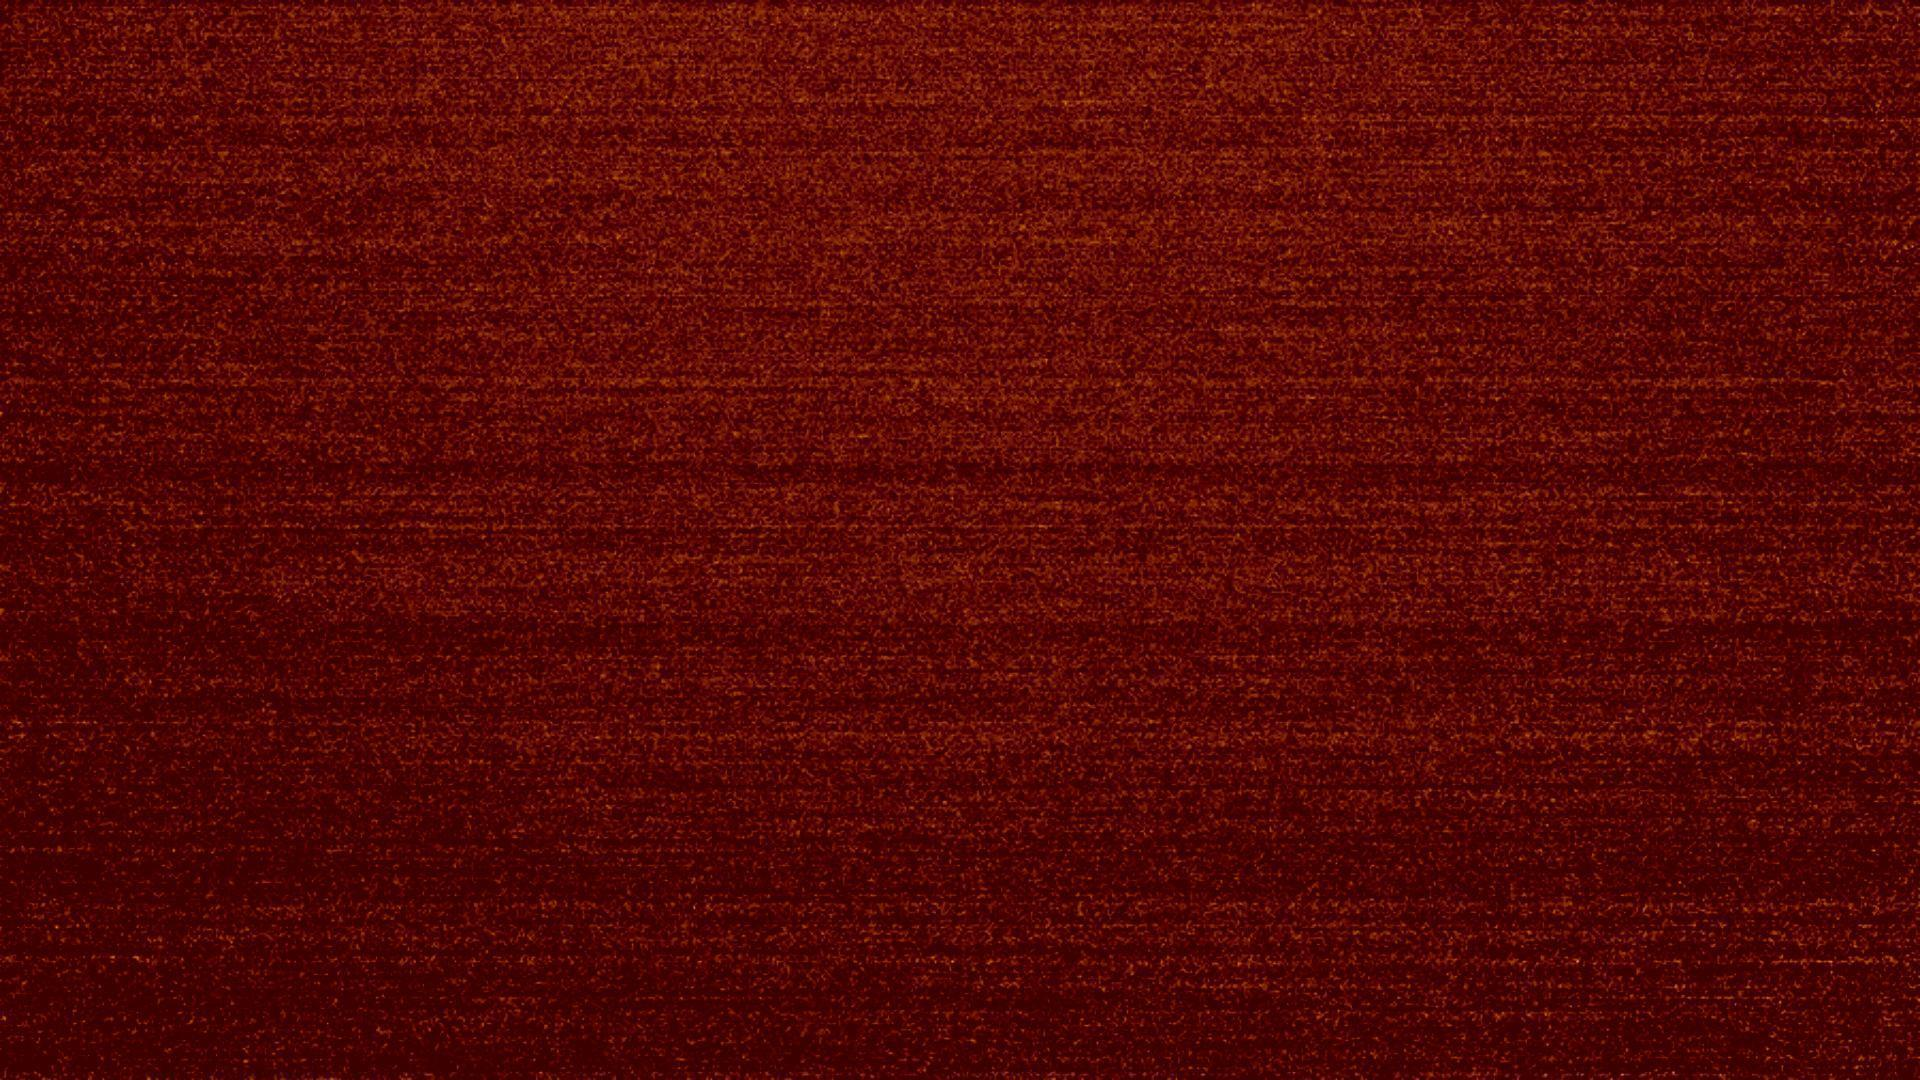 Deep Red Backgrounds Wallpaper Cave